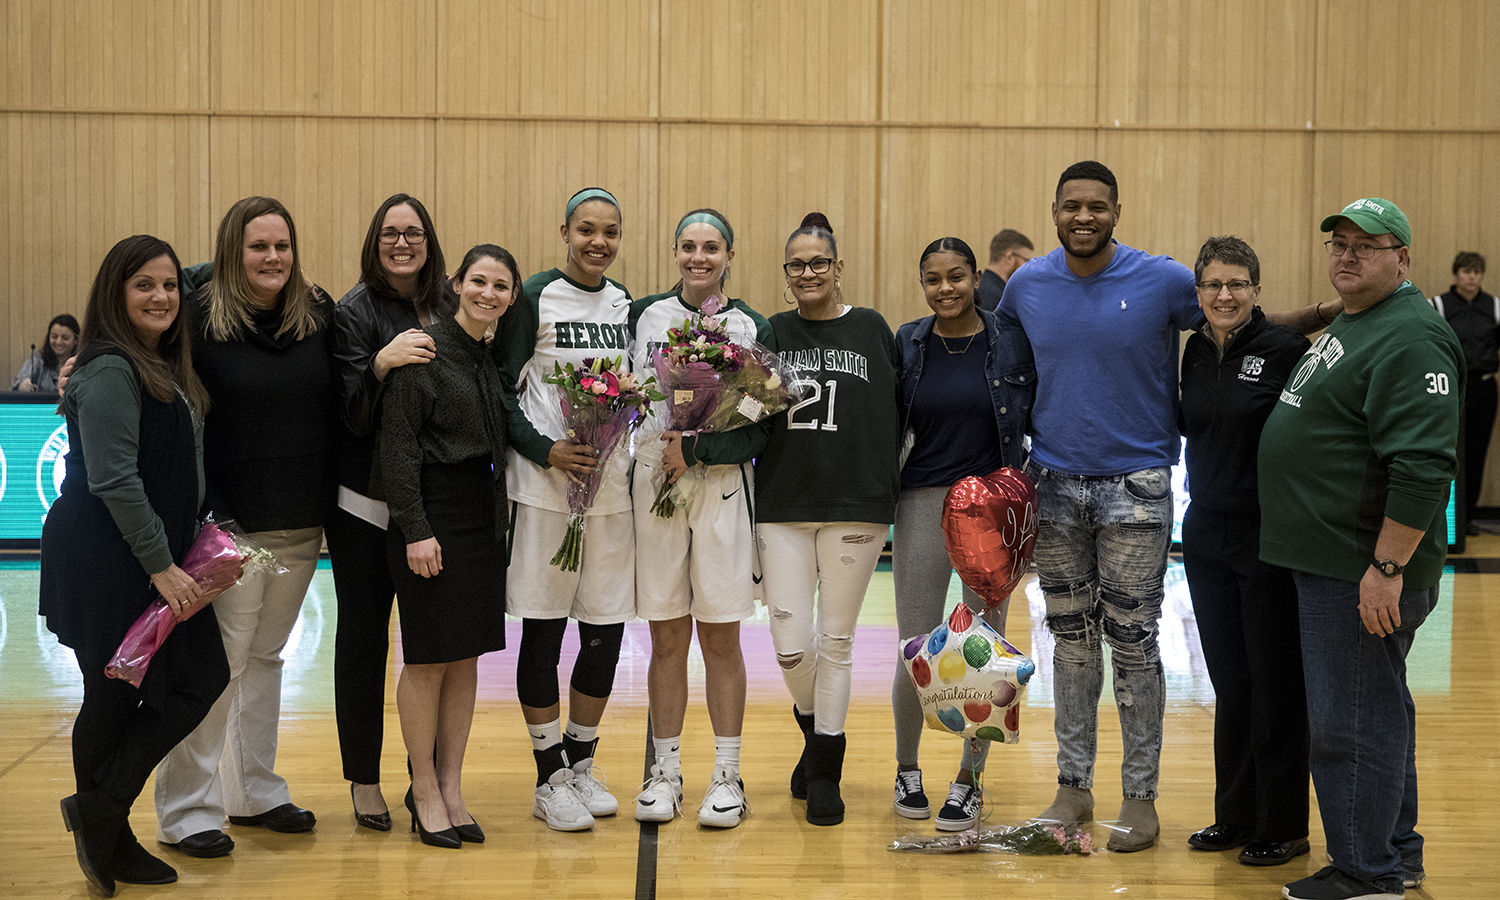 William Smith Seniors Mia Morrison '19 and Olivia Hughes '19  are honored by friends and family for their contributions to the WIlliam Smith Basketball Team during saturday's senior night celebrations. The Herons would later go one to defeat Bard with a score of 74-38.